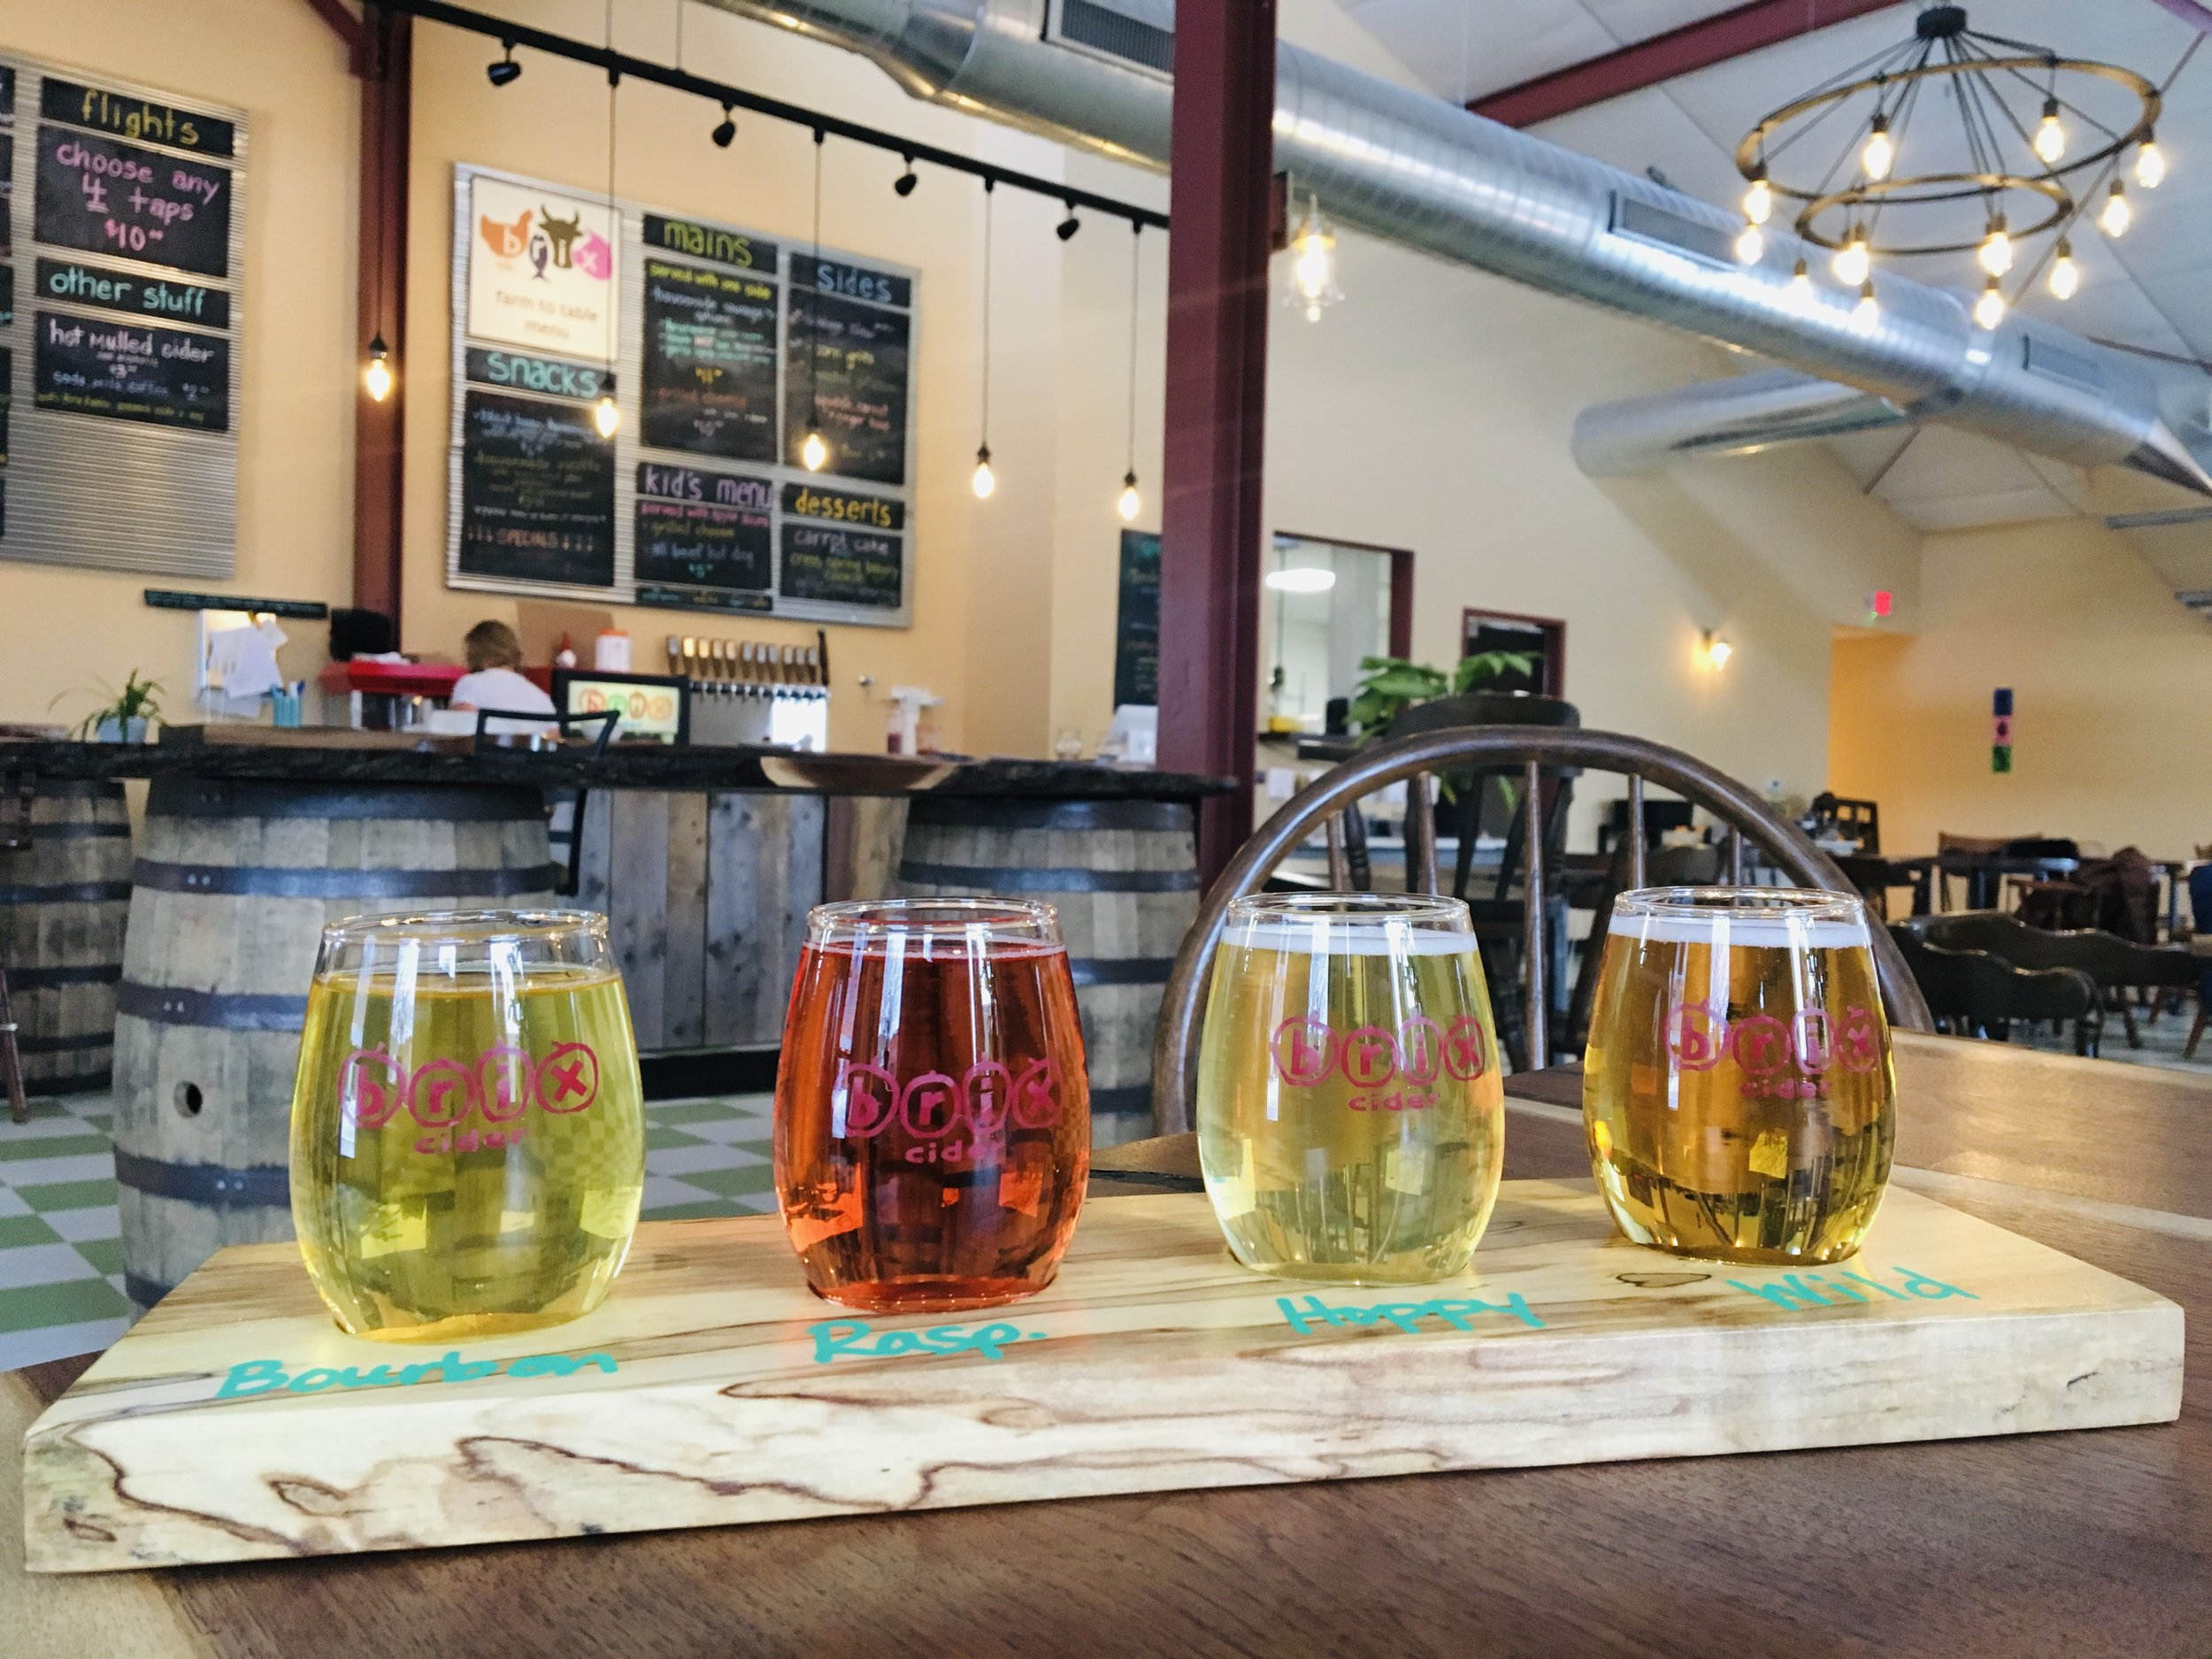 Above:  Inside the Brix Cider tasting room with a flight of cider